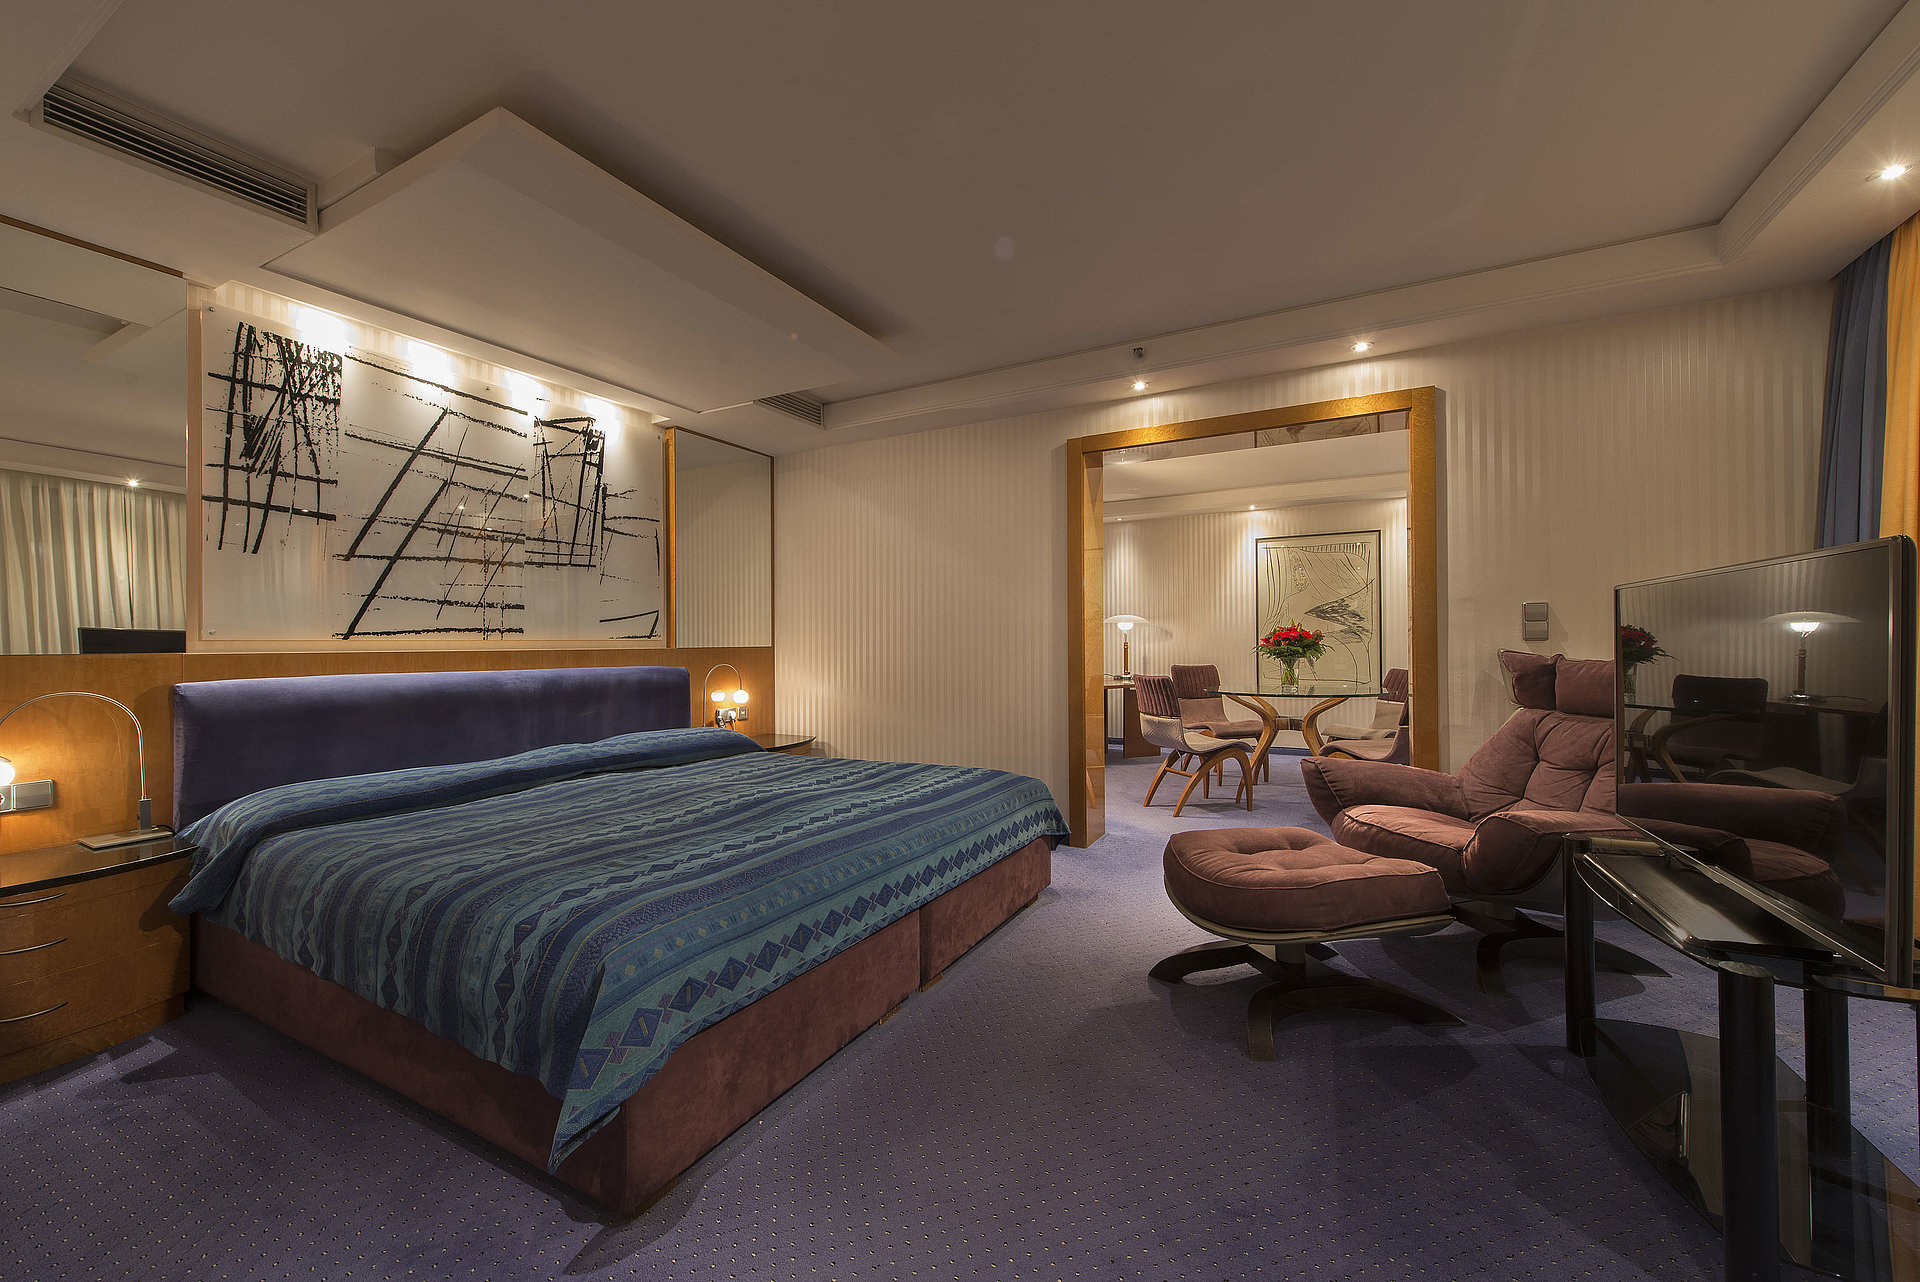 Schlafzimmer Set Bellevue Rooms Berlin | Maritim Proarte Hotel Berlin